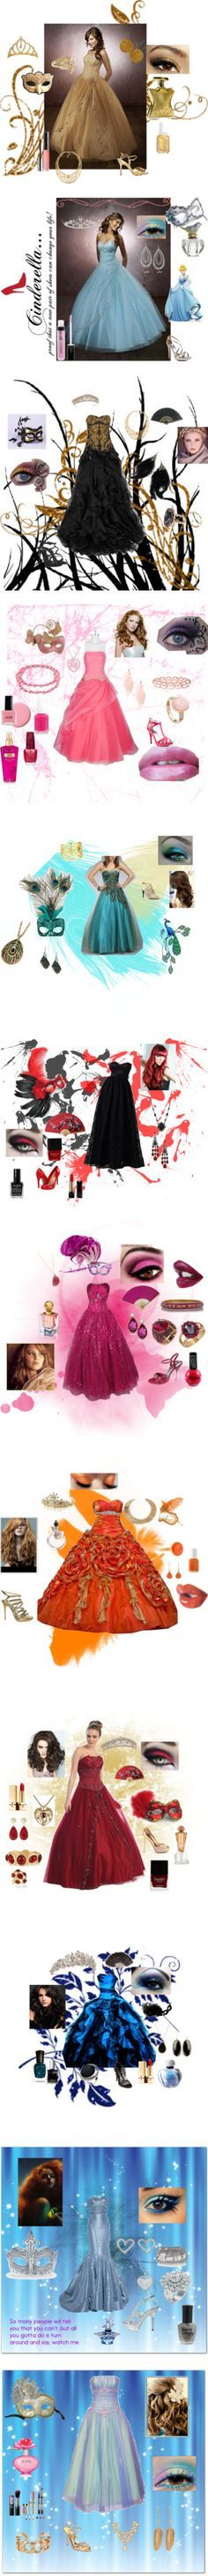 """Masquerade Ball Outfits"" by jgirl101 ❤ liked on Polyvore:"